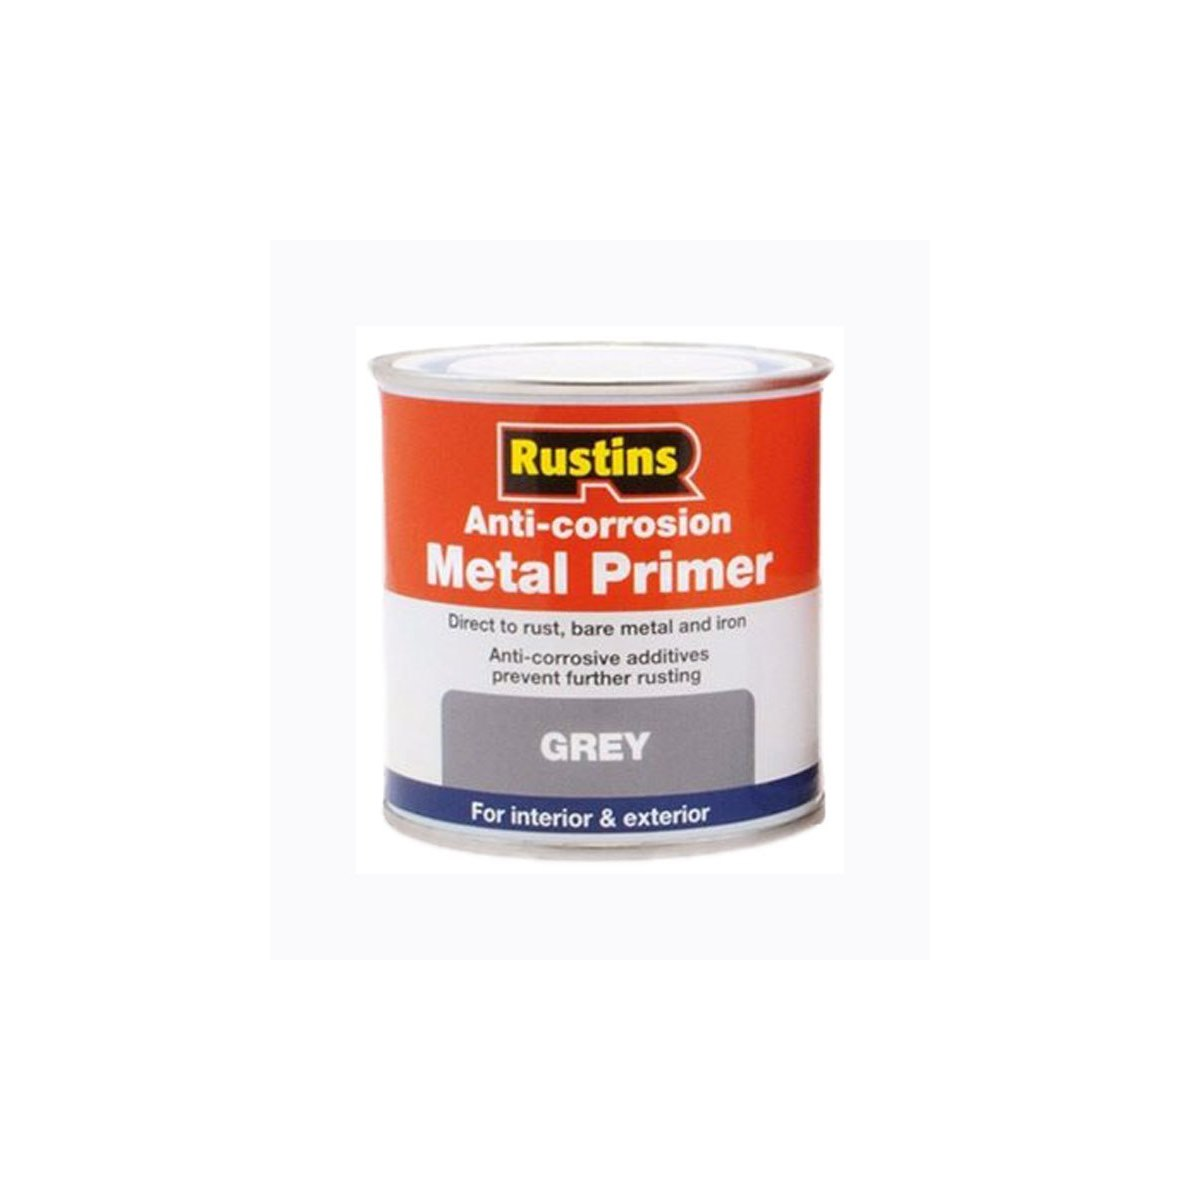 Rustins Anti-Corrosion Metal Primer Grey 250ml